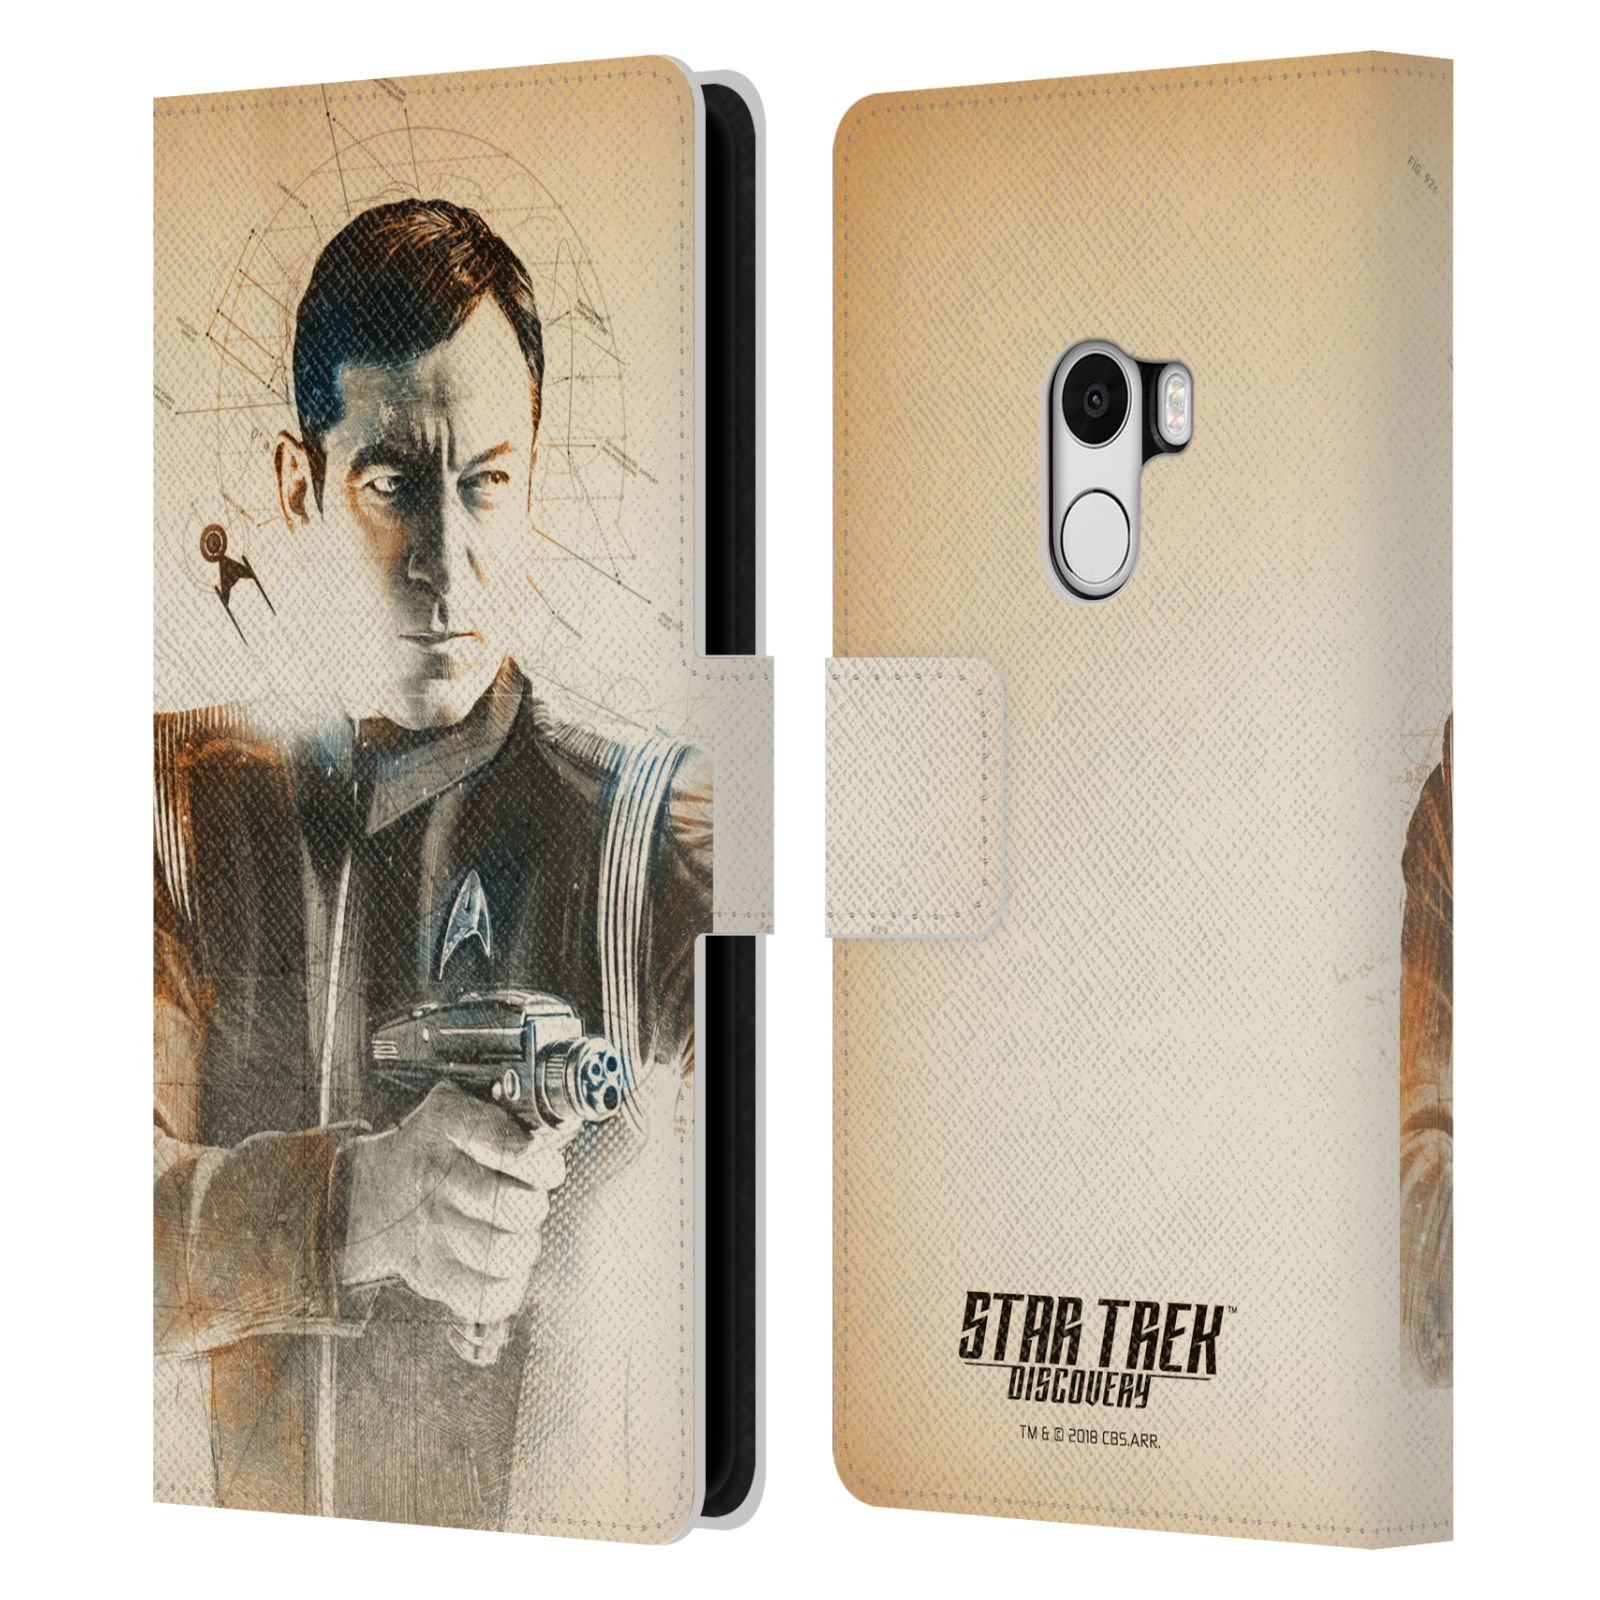 STAR-TREK-DISCOVERY-GRUNGE-CHARACTERS-LEATHER-BOOK-WALLET-CASE-FOR-XIAOMI-PHONES